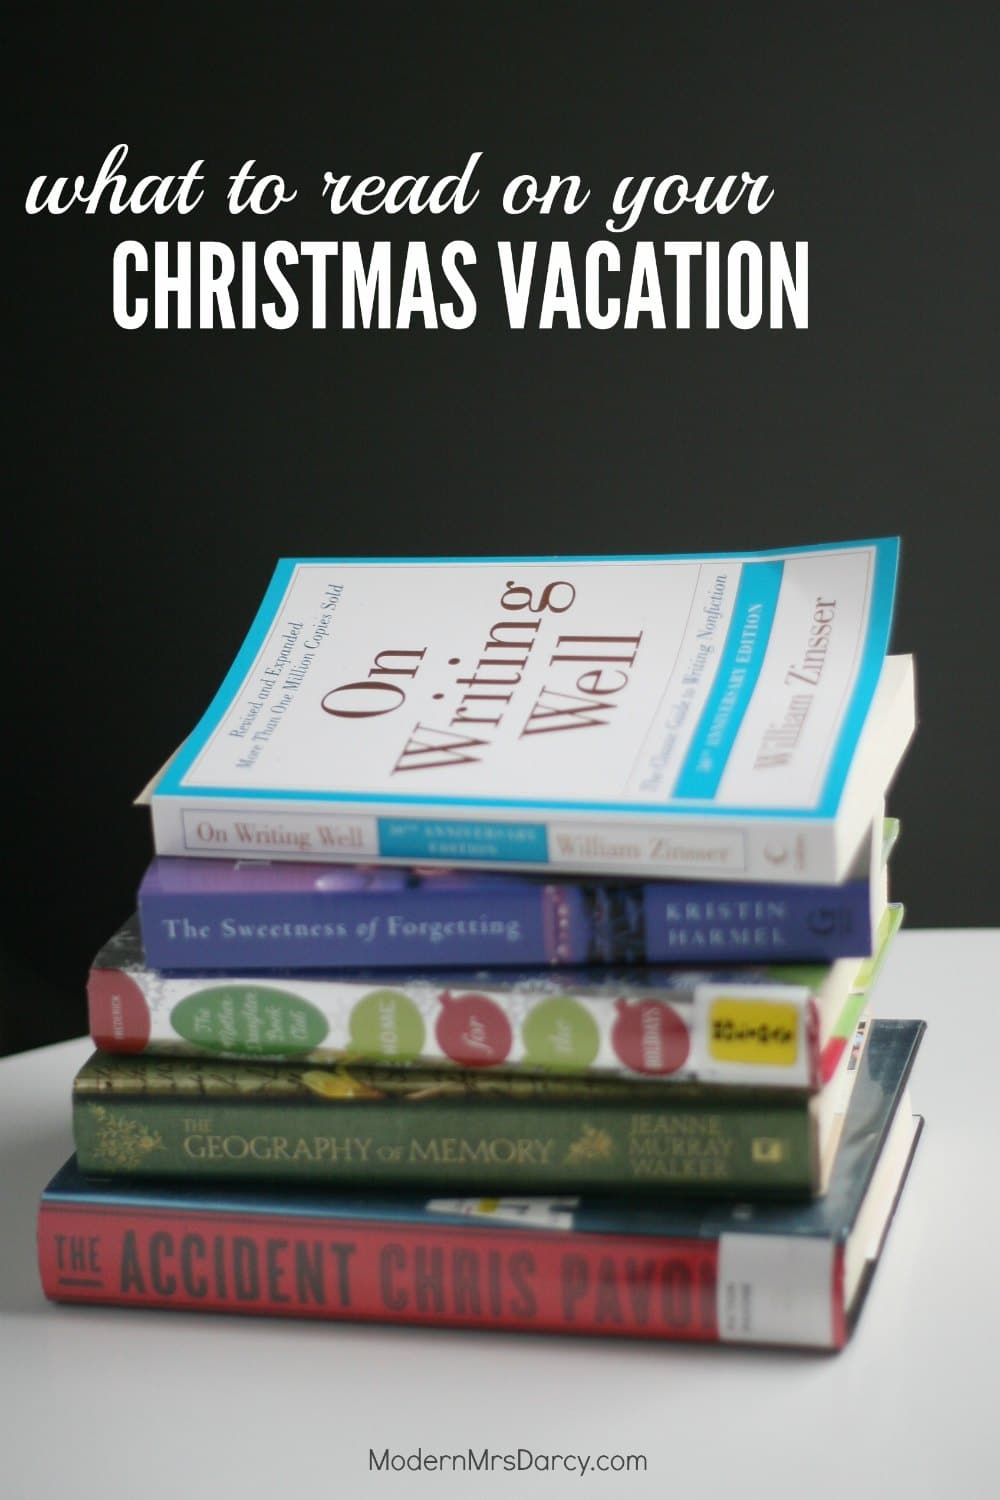 Whether you want a fast-paced thriller, a contemplative memoir, or a relatable novel, this list has great books to read on your Christmas vacation.